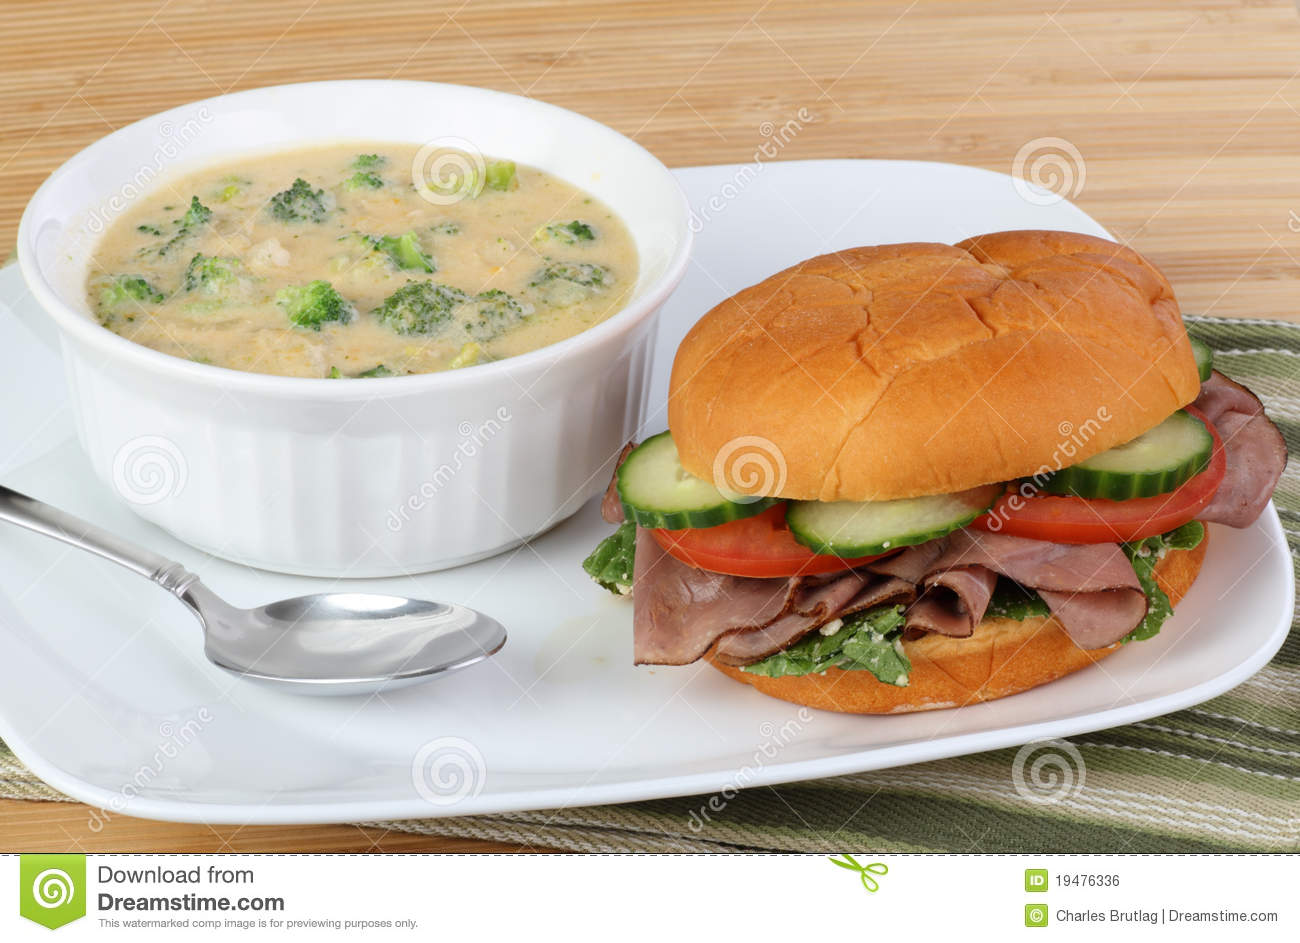 ... sandwich with cucumber, lettuce, tomato and a bowl of broccoli soup